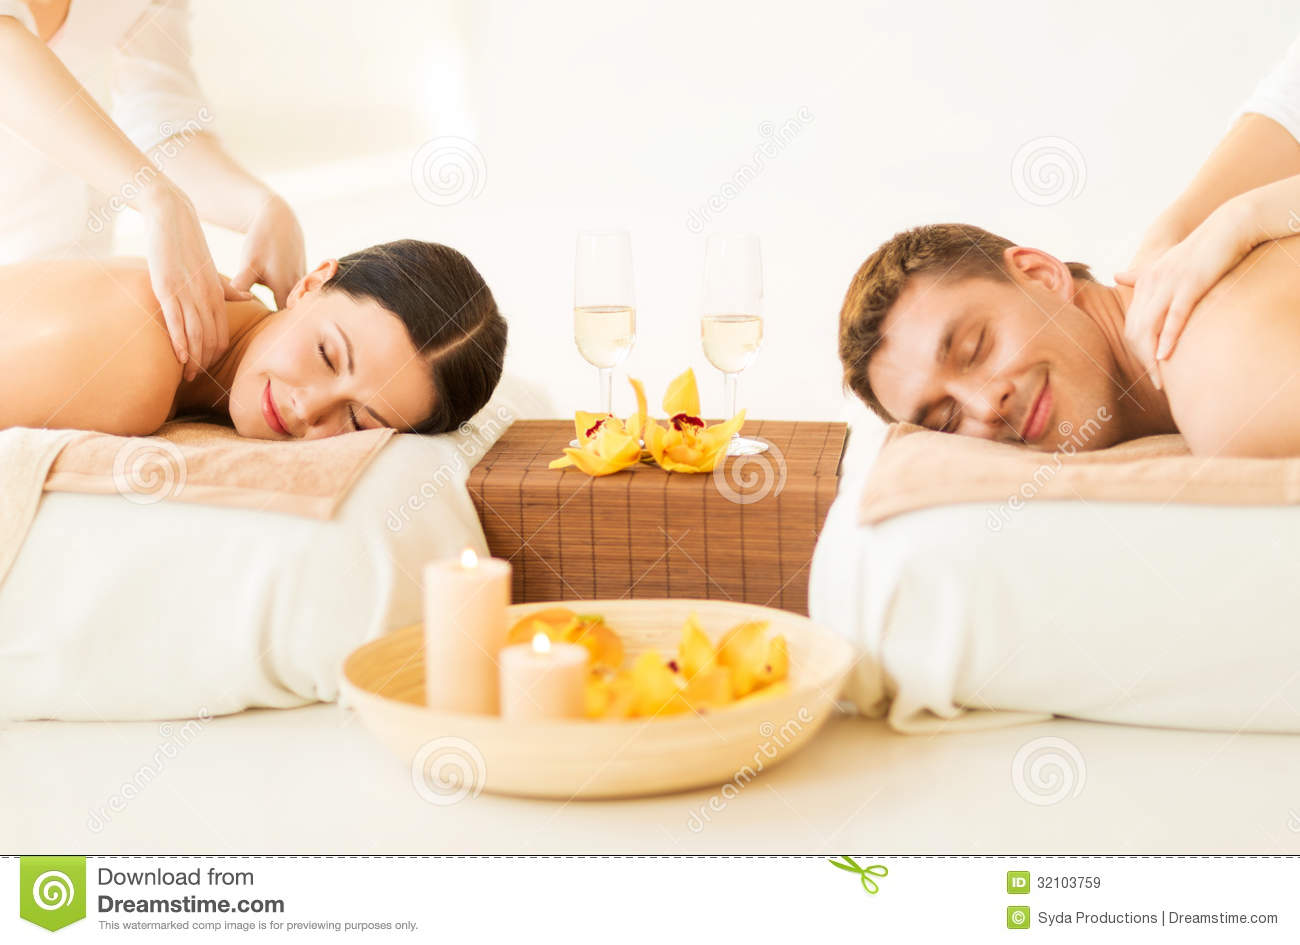 Hotel Suite Room moreover petasos moreover Sw tajjiwaspawm likewise Stock Illustration Body Mind Soul Spirit Word Cloud White Background Image48573200 as well Royalty Free Stock Images Couple Spa Picture Salon Getting Massage Image32103759. on spa treatment room plan